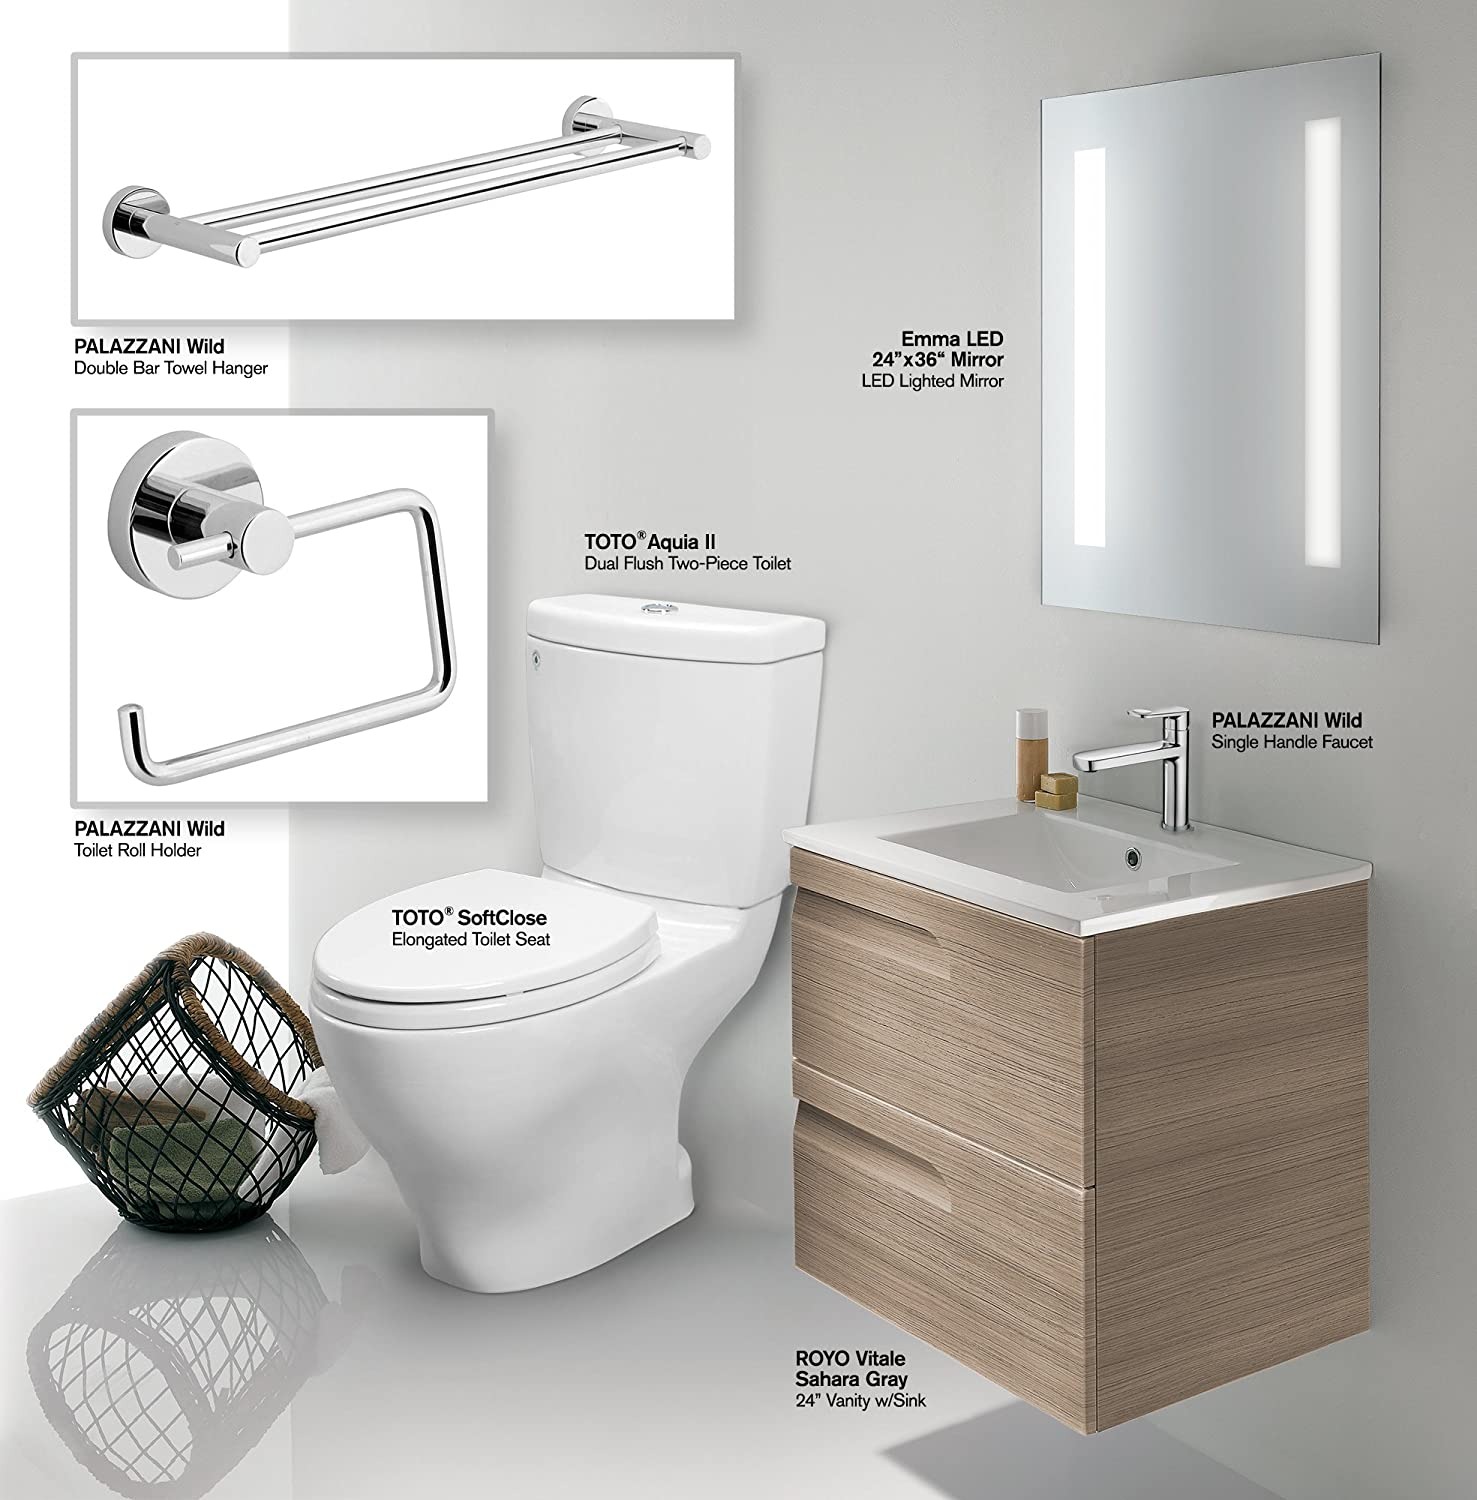 Amazon.com: Bathroom Vanity Set: INCLUDES: TOTO CST416M#01 Toilet ...